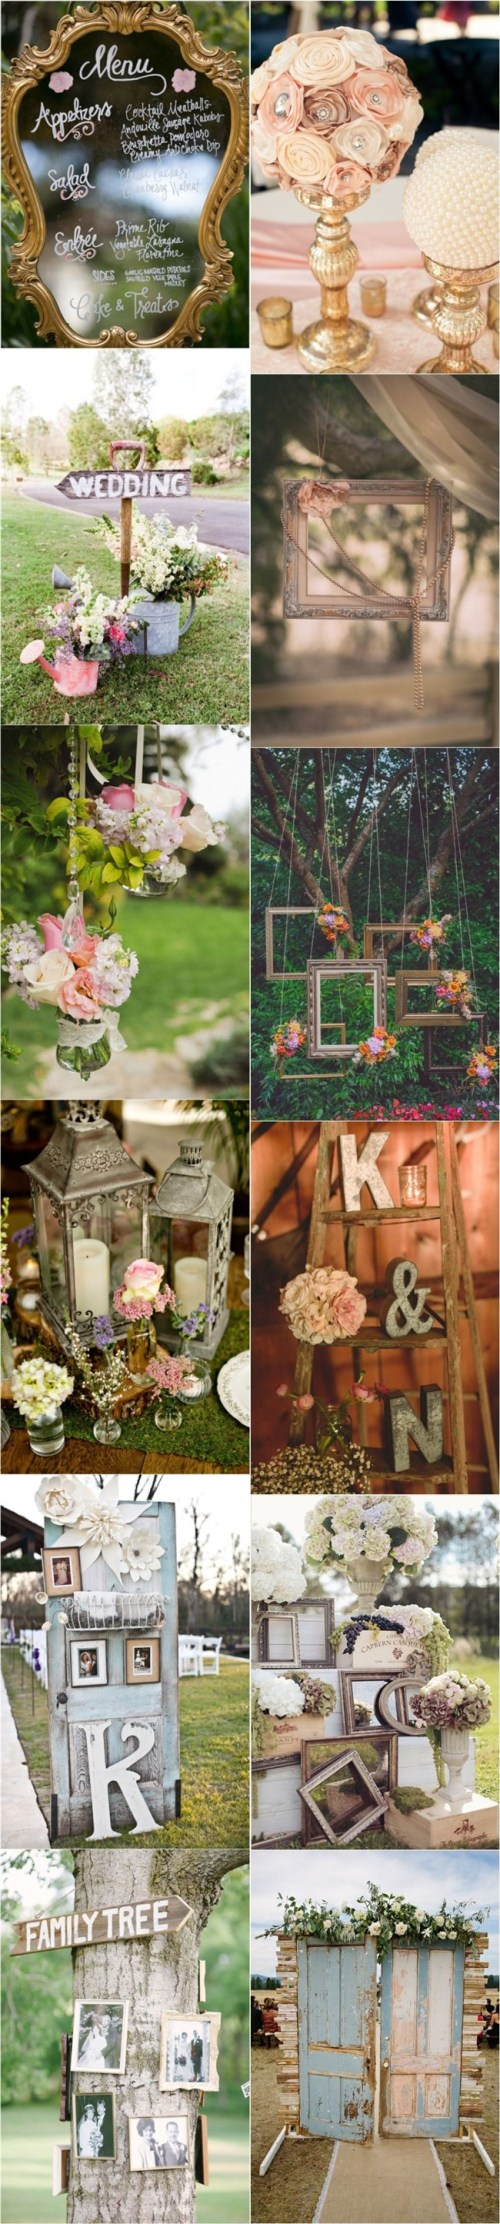 Medium Of Vintage Wedding Decorations